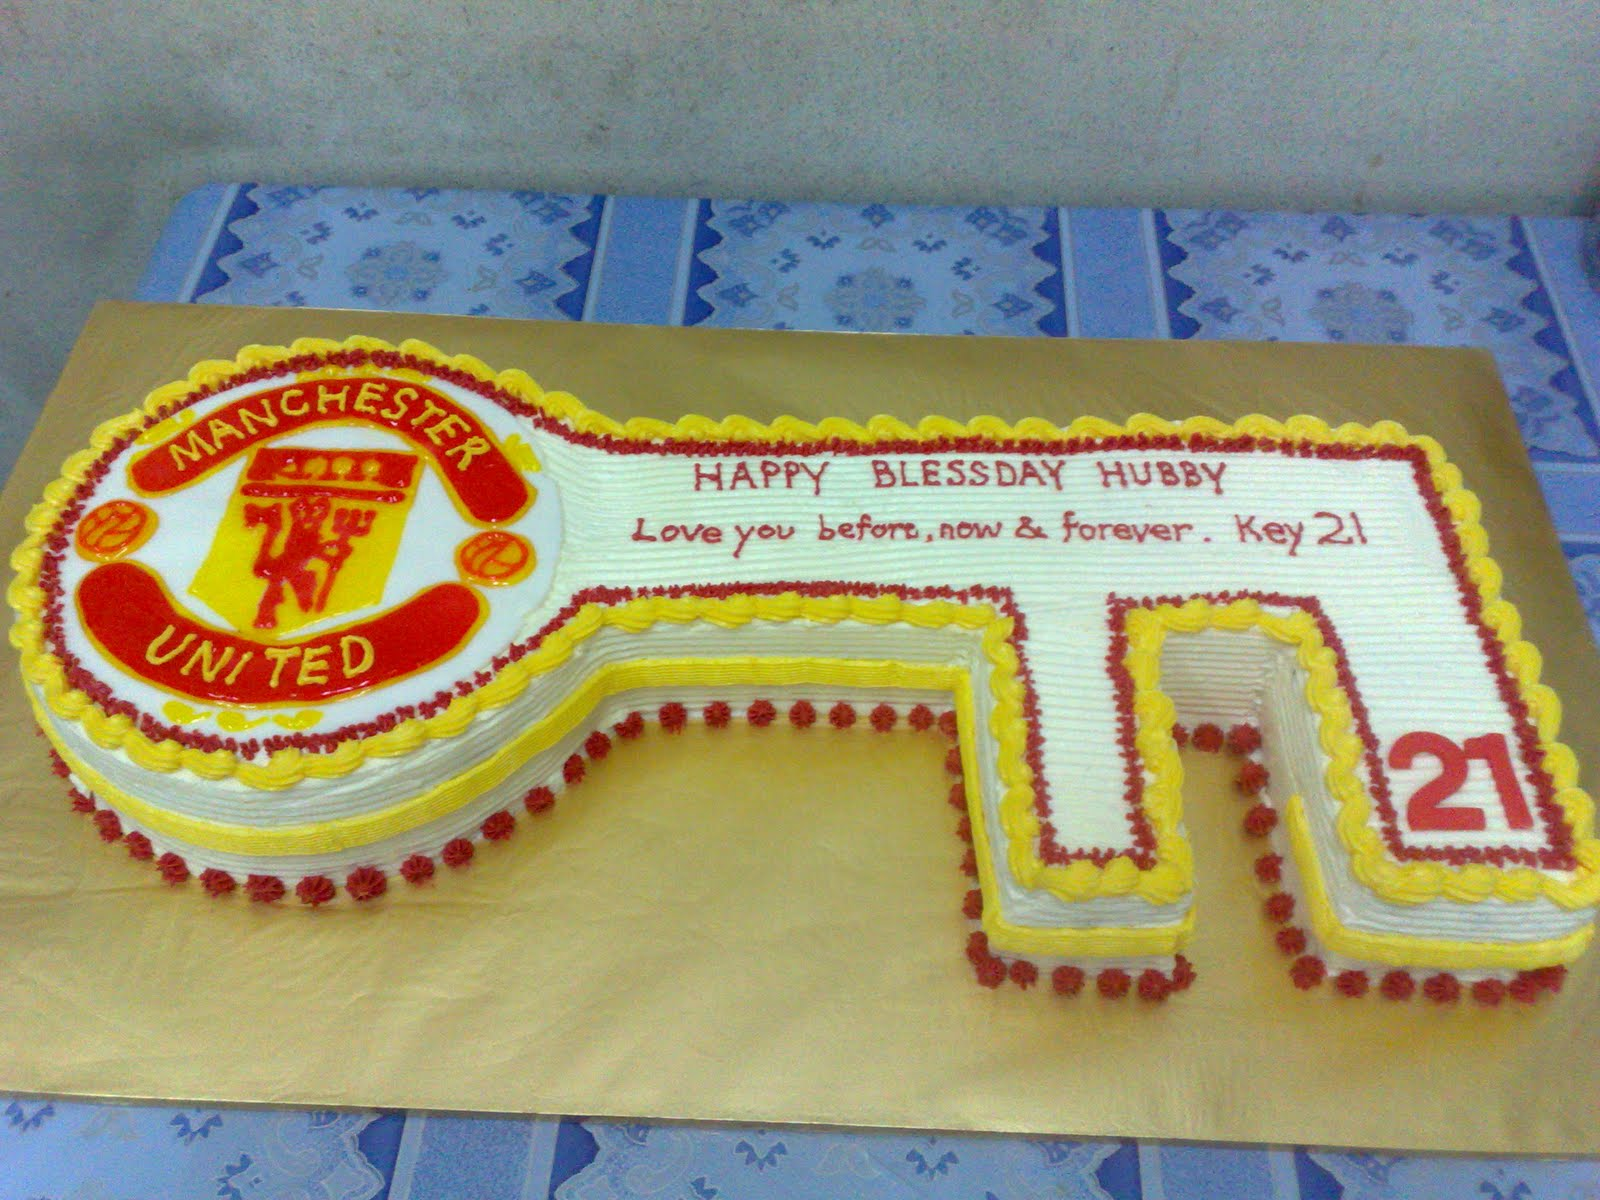 Key Cake Designs For 21st Birthday : L mis Cakes & Cupcakes Ipoh Contact : 012-5991233 : 21st ...